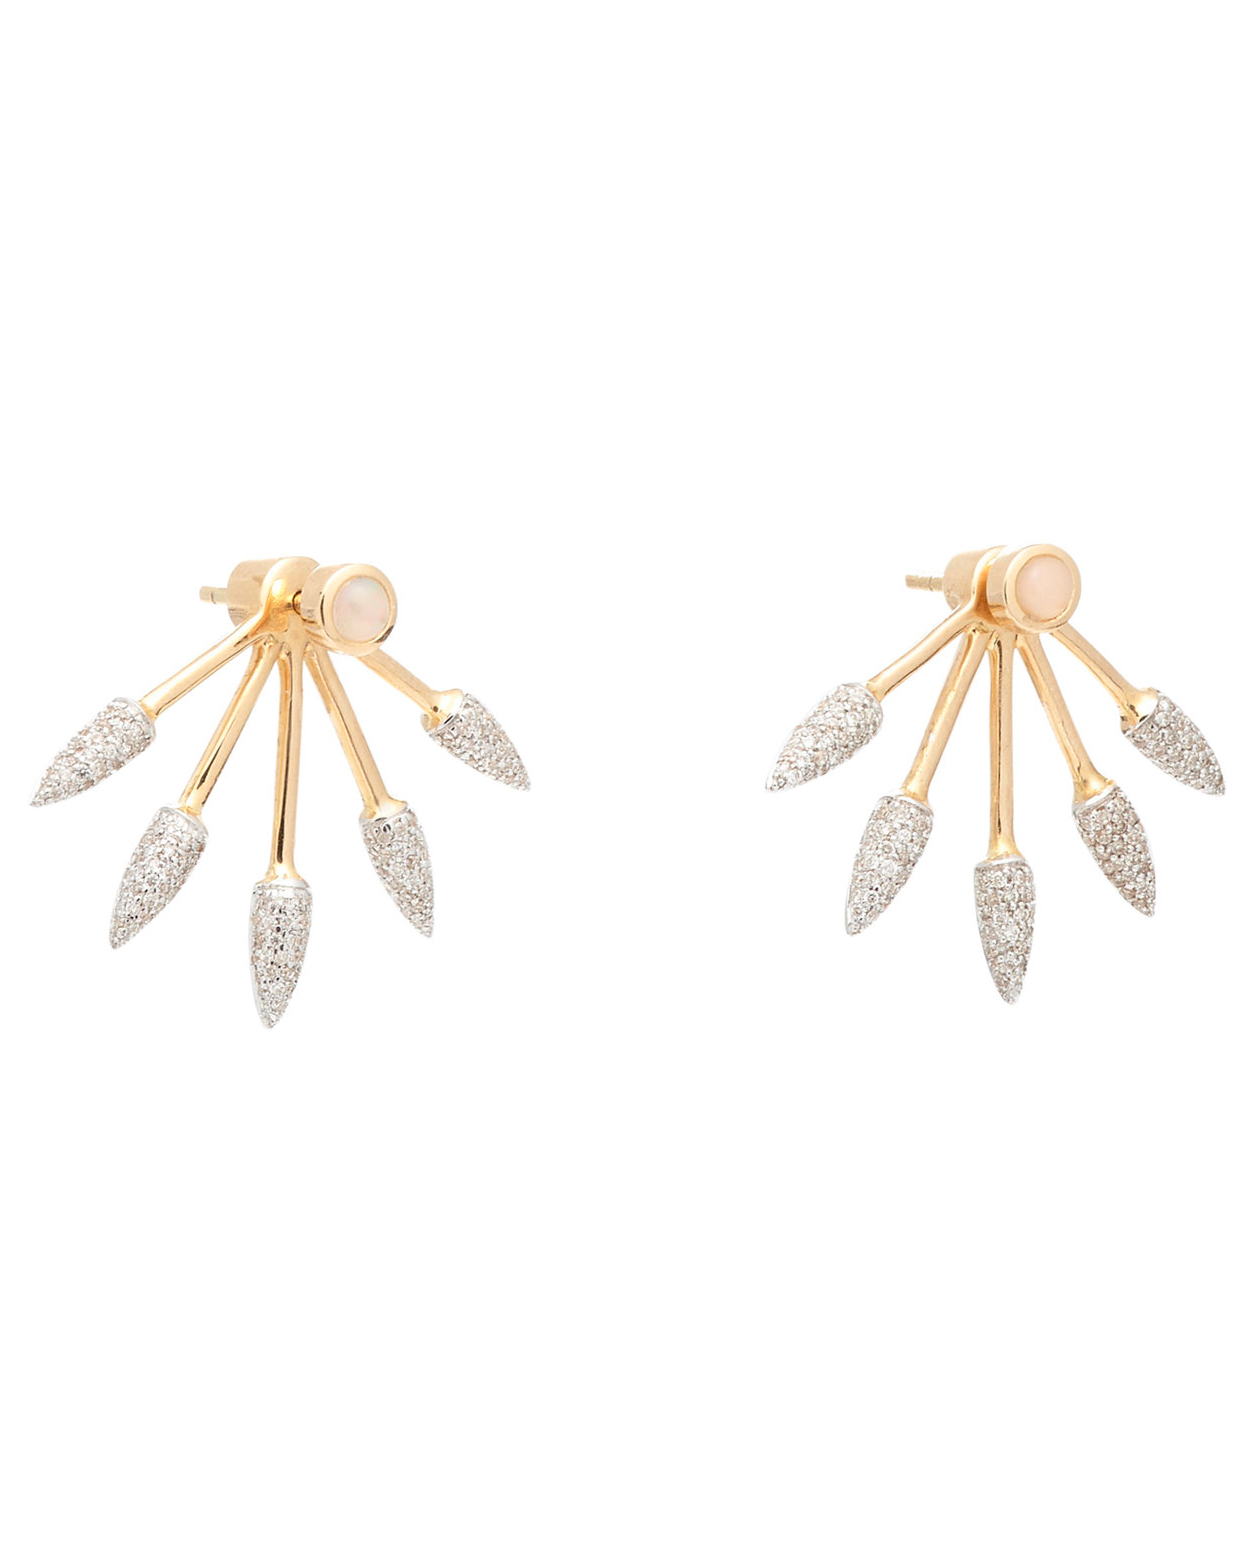 opal-earrings-pamela-love-barneys-0115.jpg